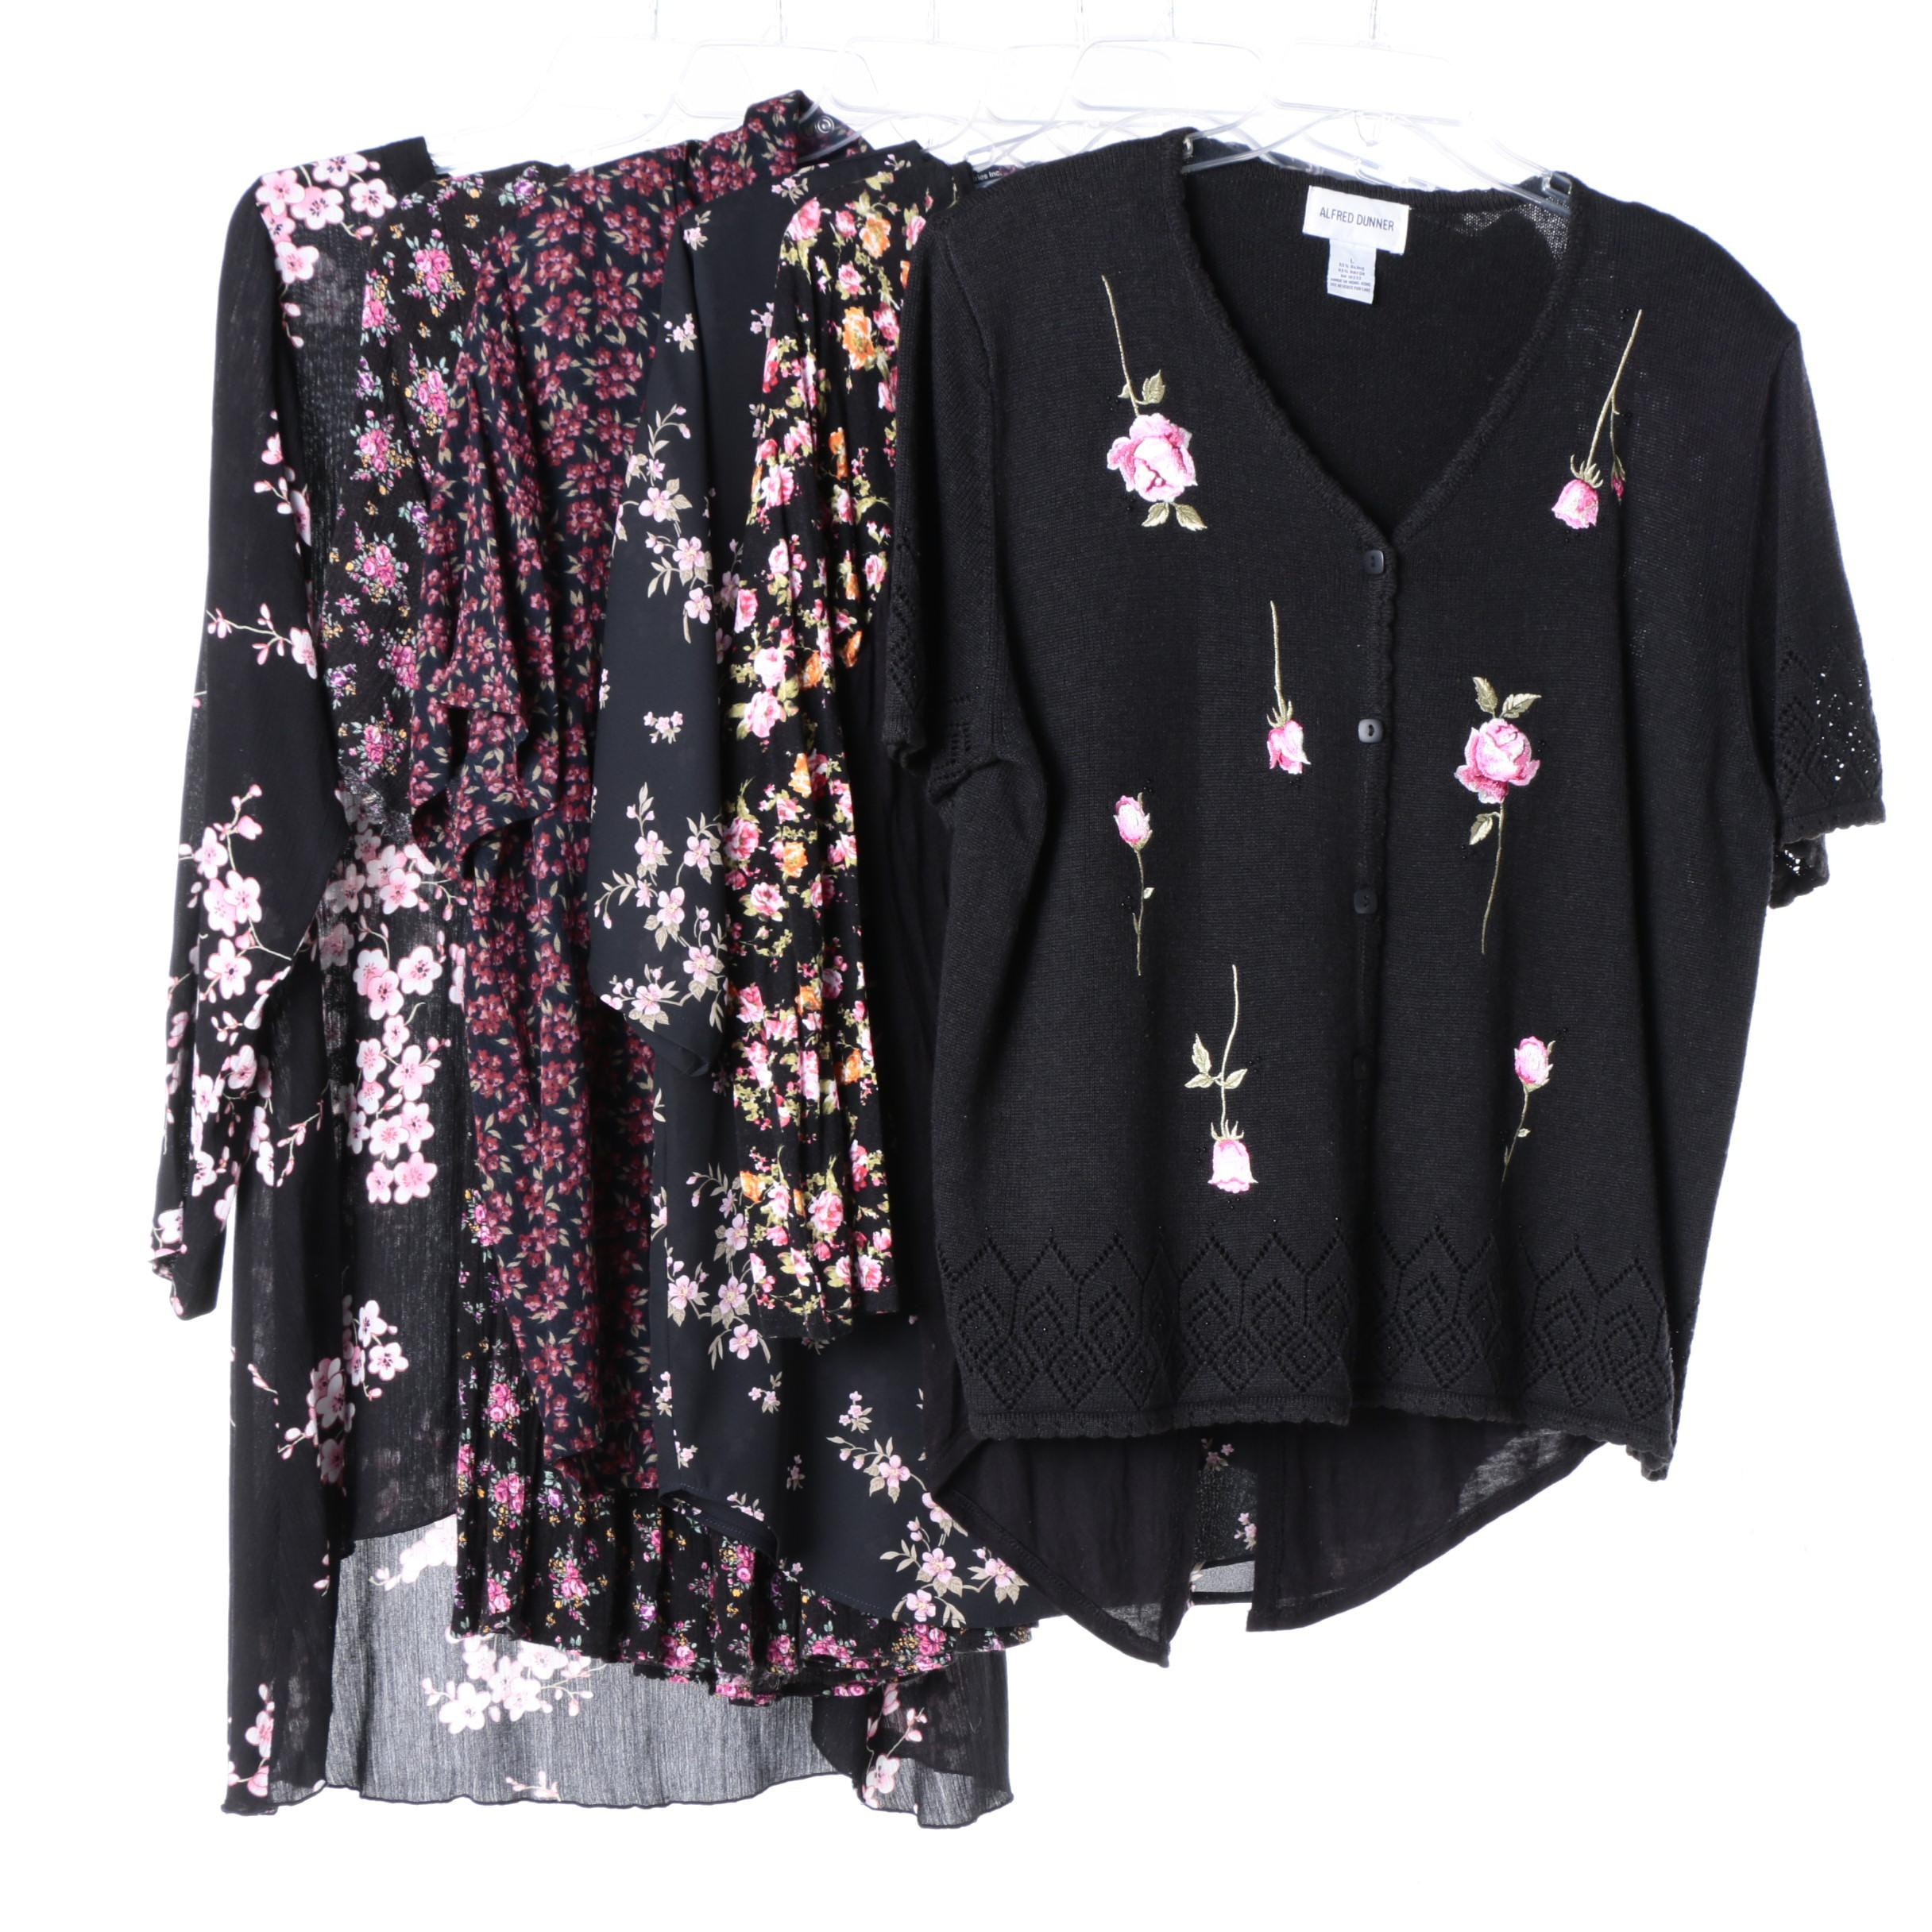 Floral Tops Including Serendipity